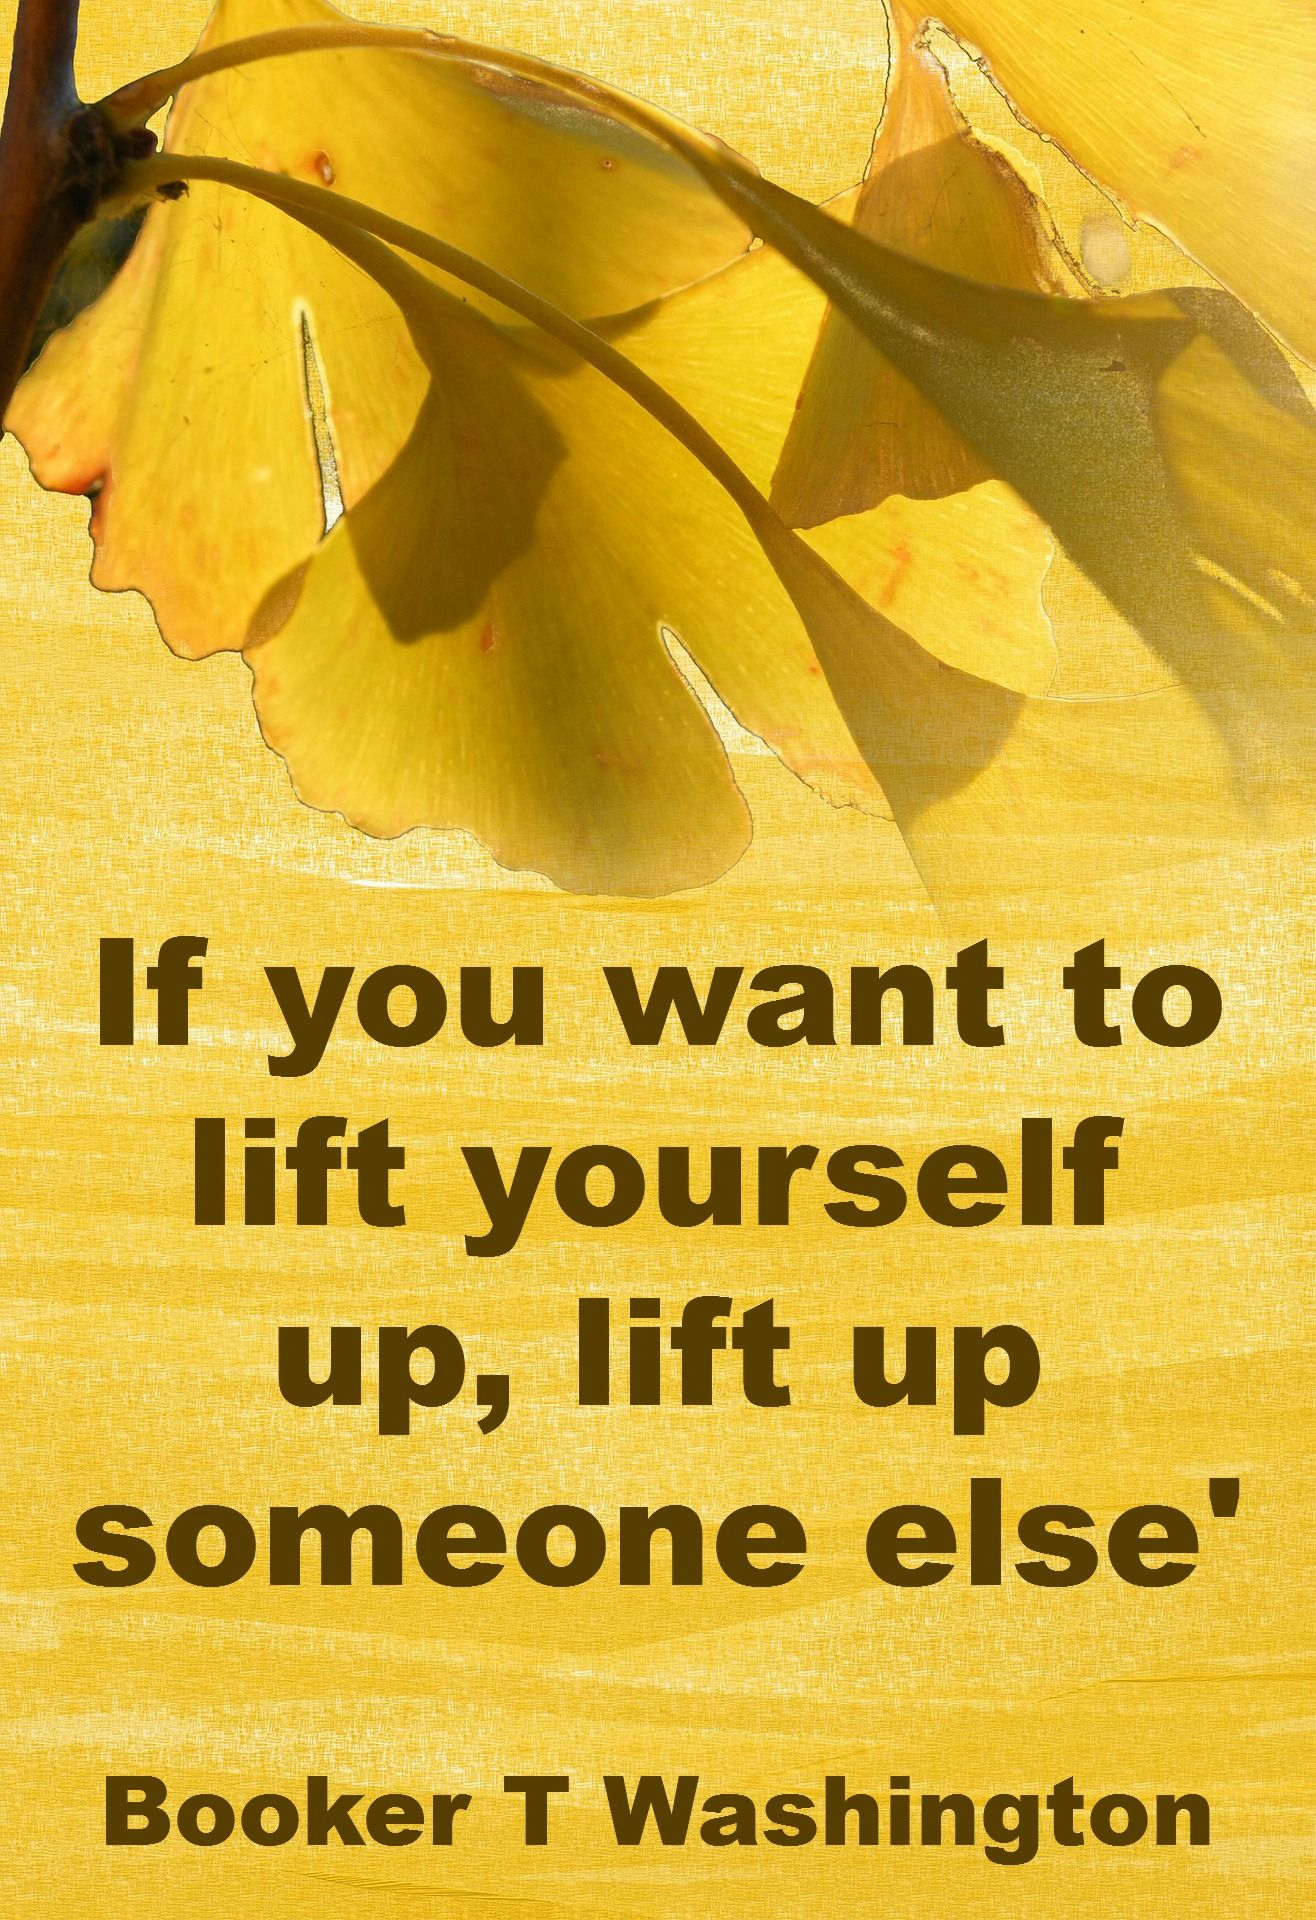 If you want to lift yourself up lift up someone else